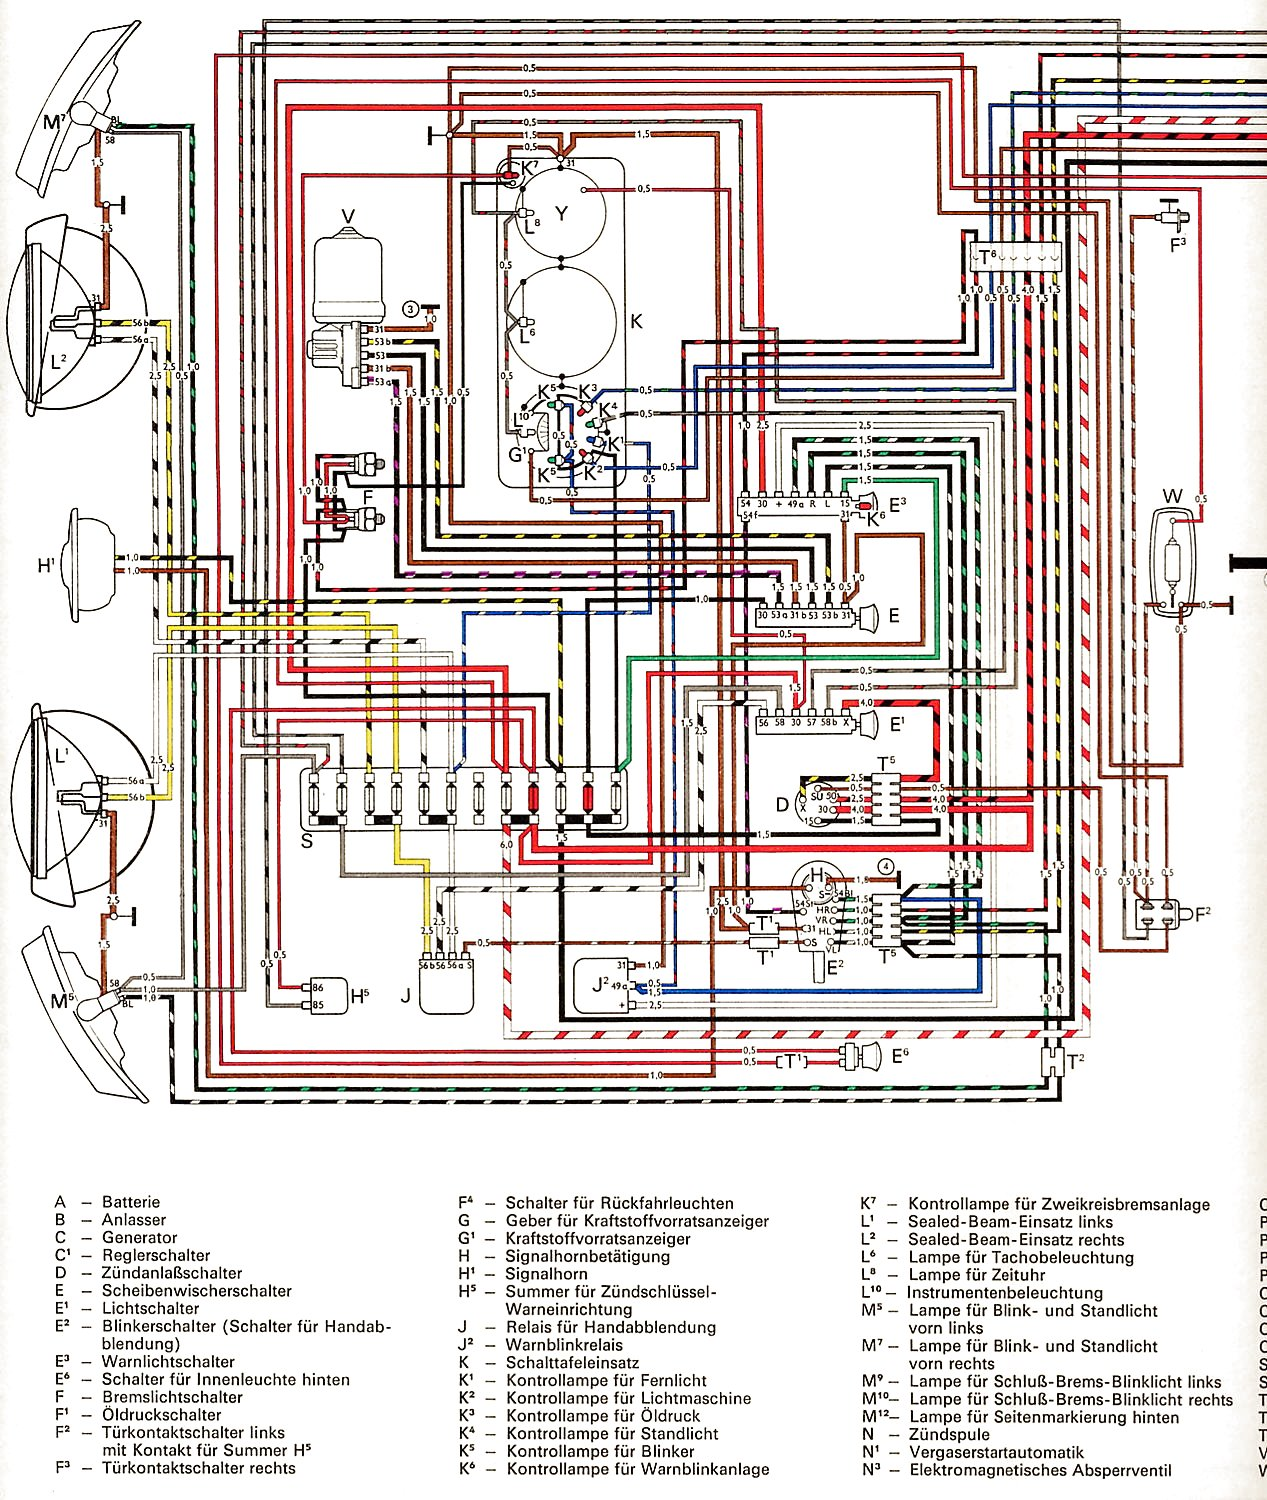 wire vw super beetle fuse box vw image wiring diagram and vw super beetle 1972 fuse box block circuit breaker diagram additionally 1957 beetle wiring diagram thegoldenbug